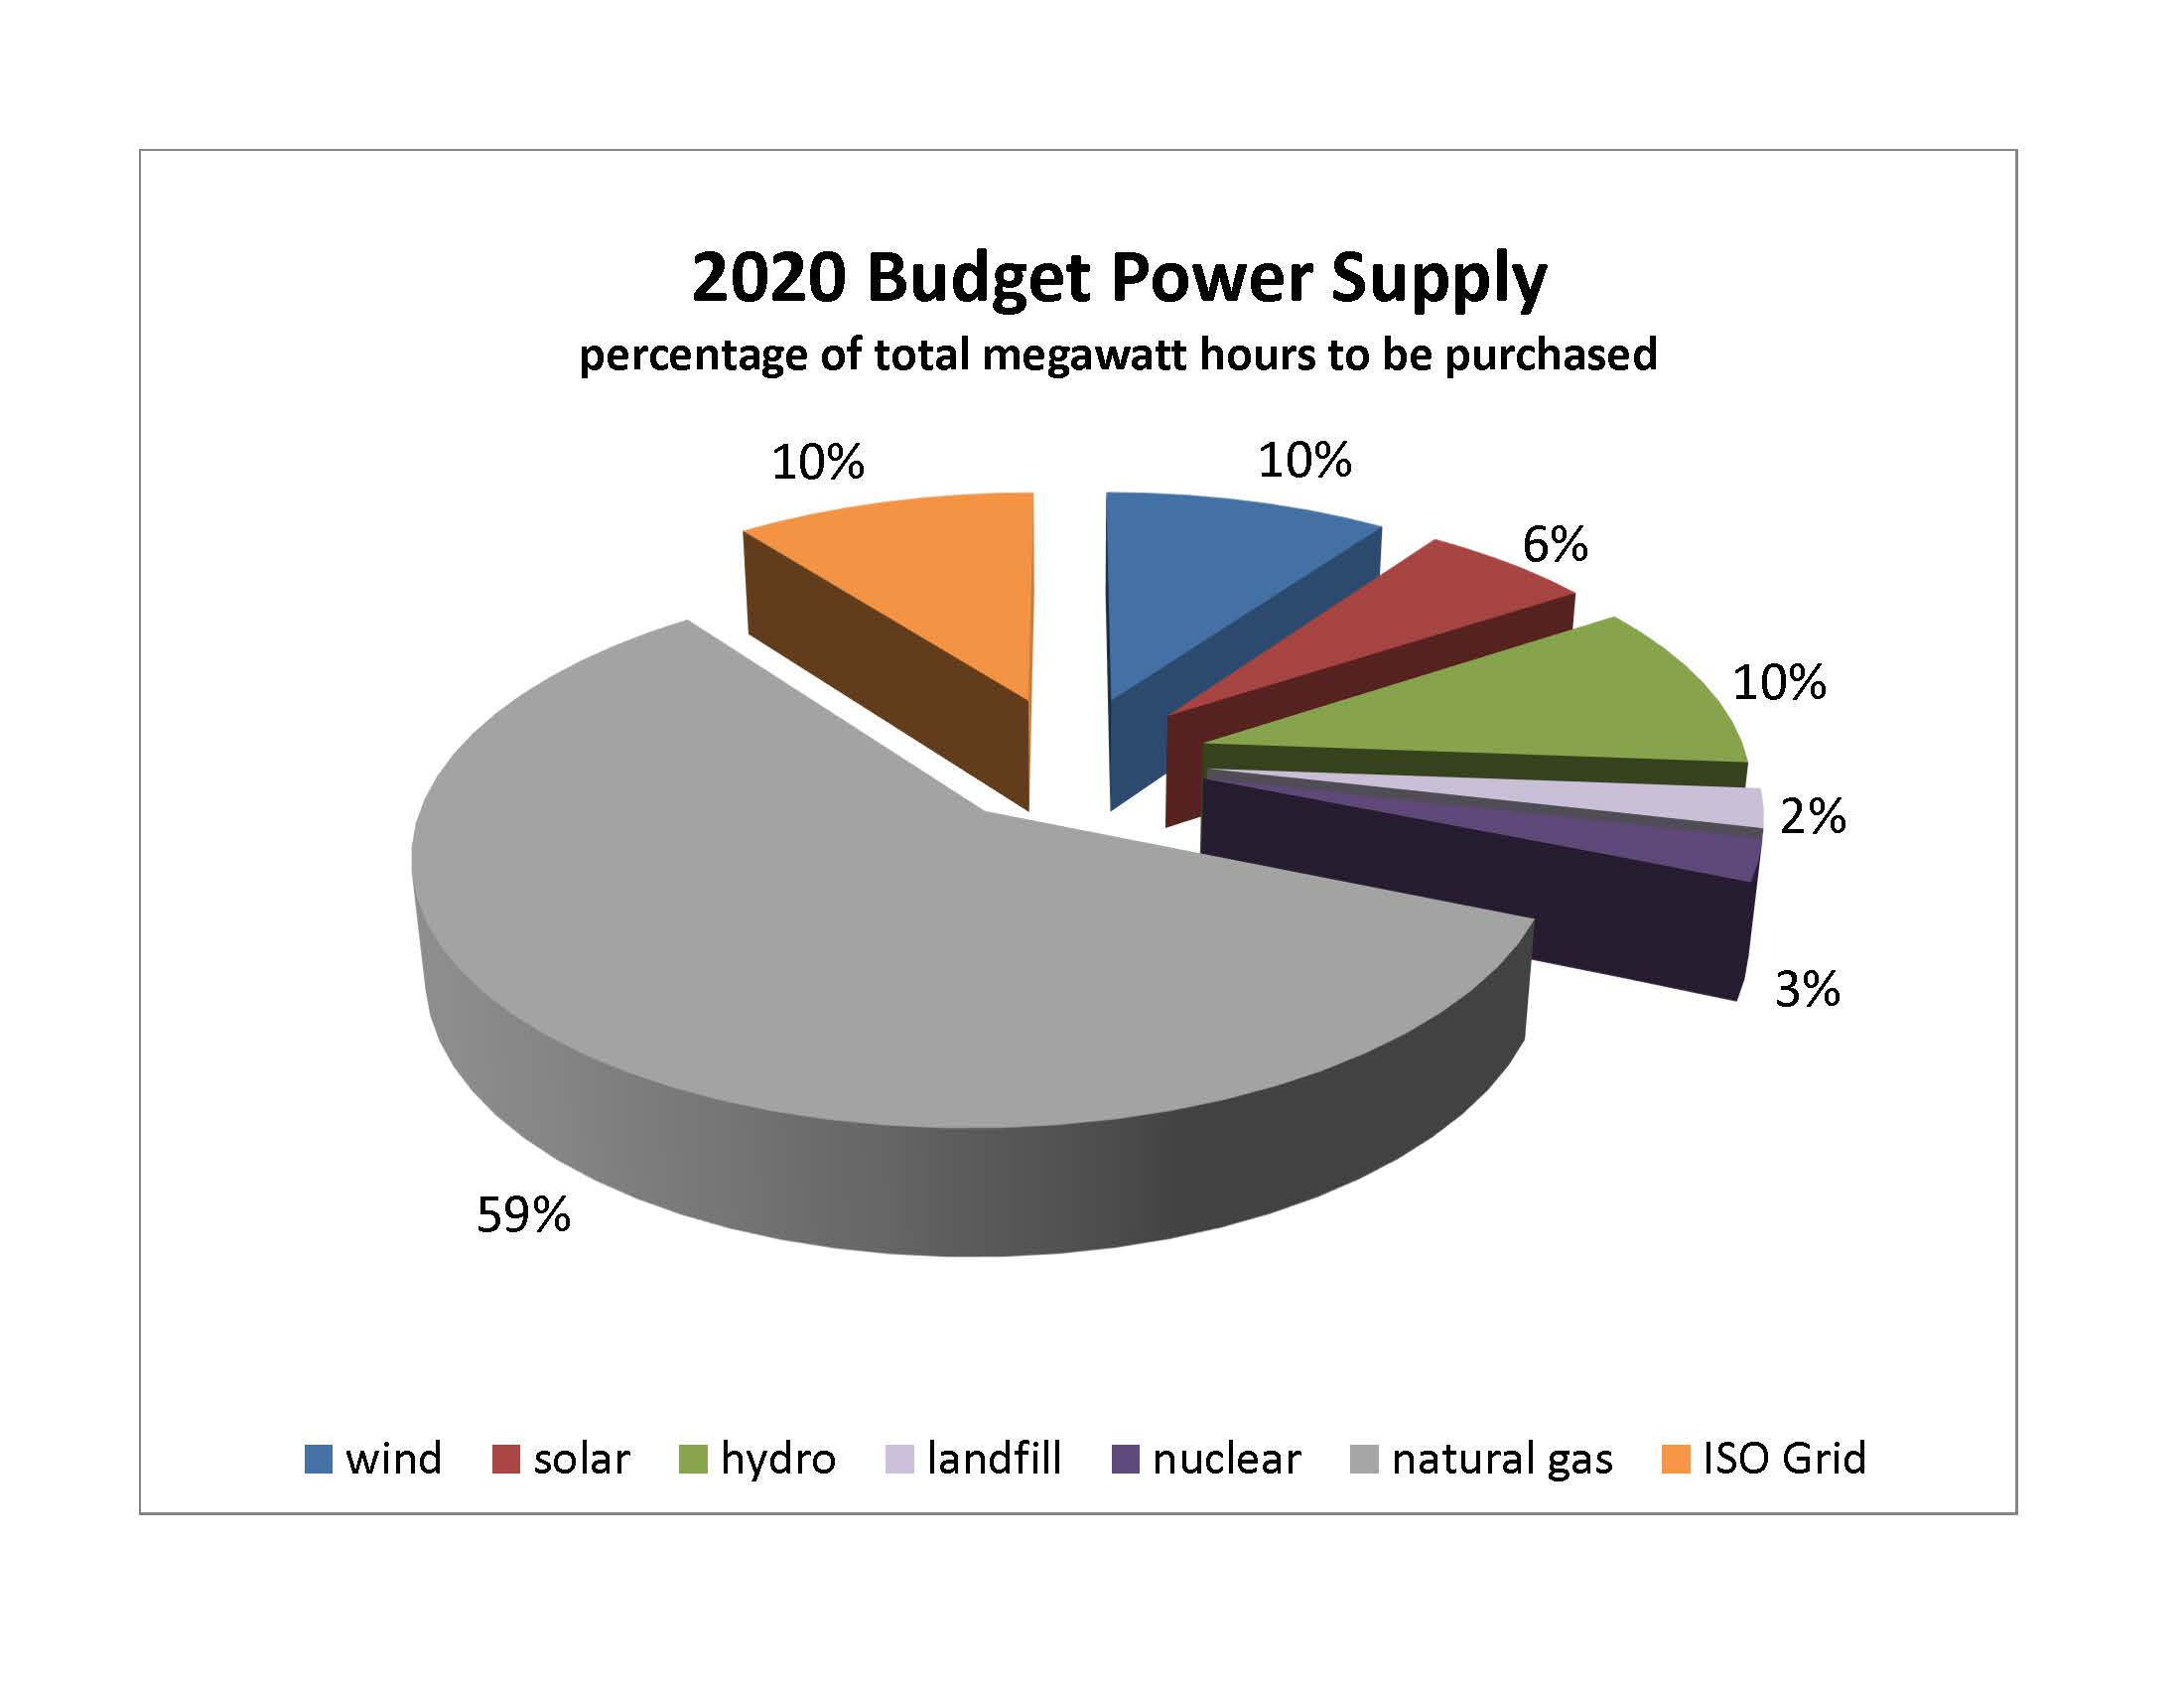 2020 Purchase Power Budget by Resource Type